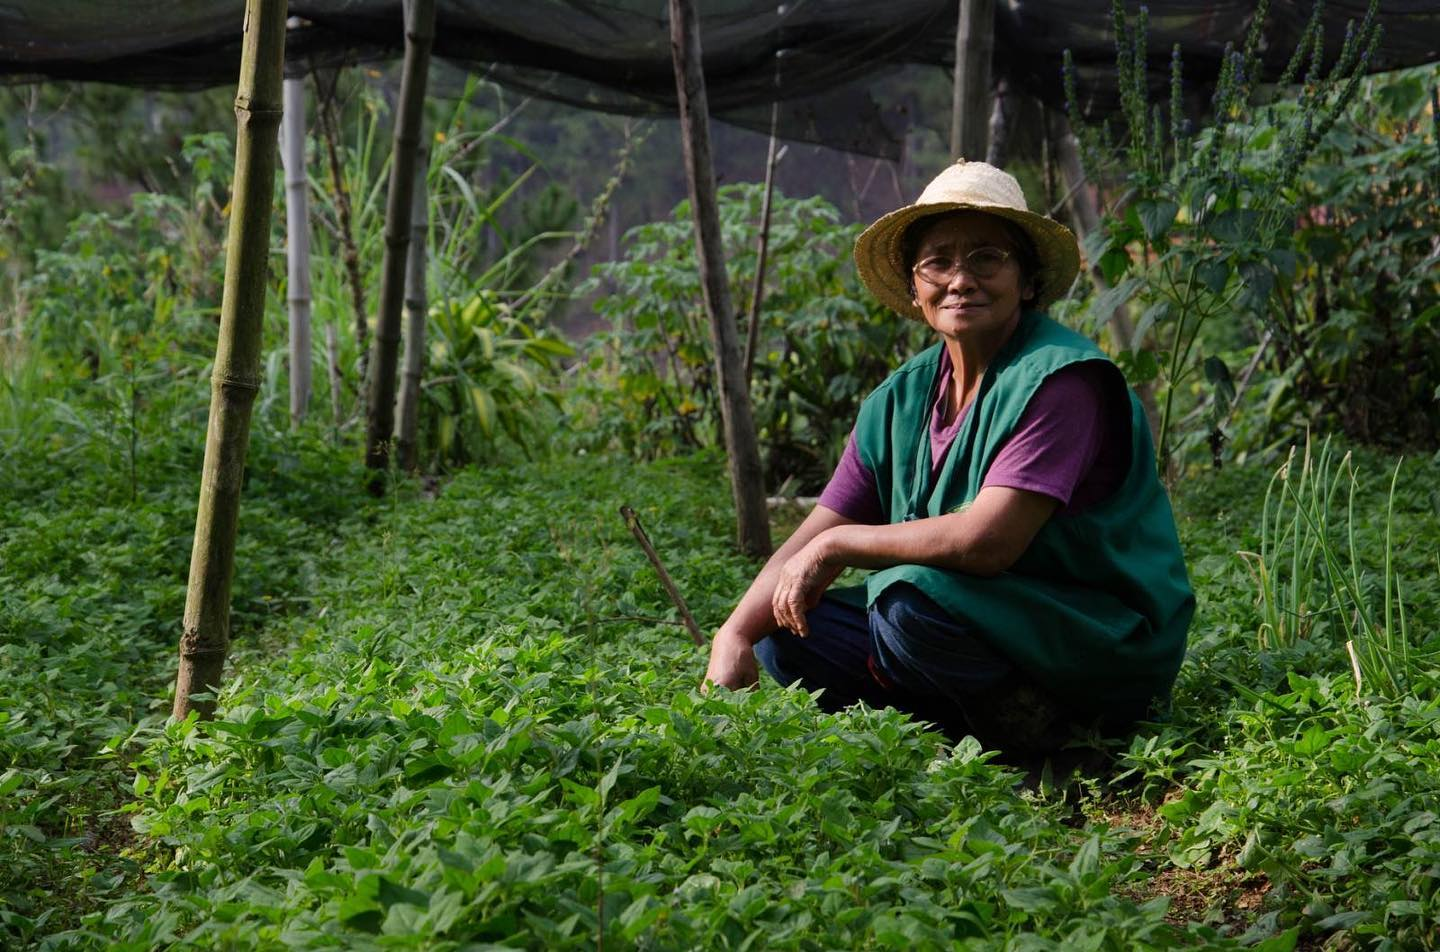 Empowering Filipino farmers through organic agriculture